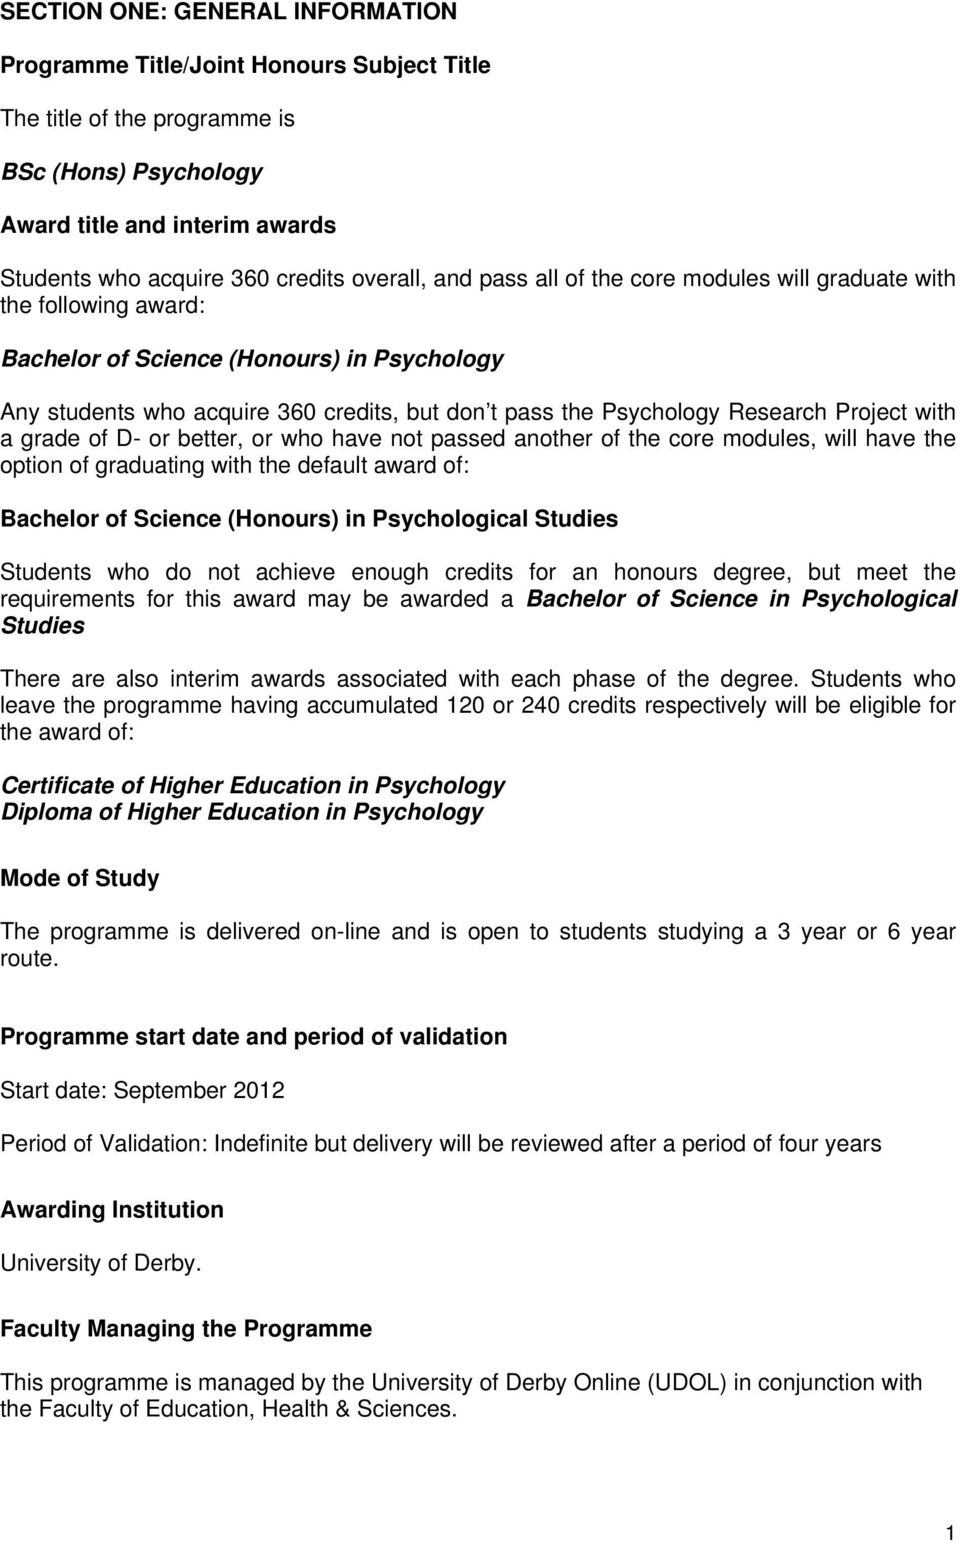 better, or who have not passed another of the core modules, will have the option of graduating with the default award of: Bachelor of Science (Honours) in Psychological Studies Students who do not